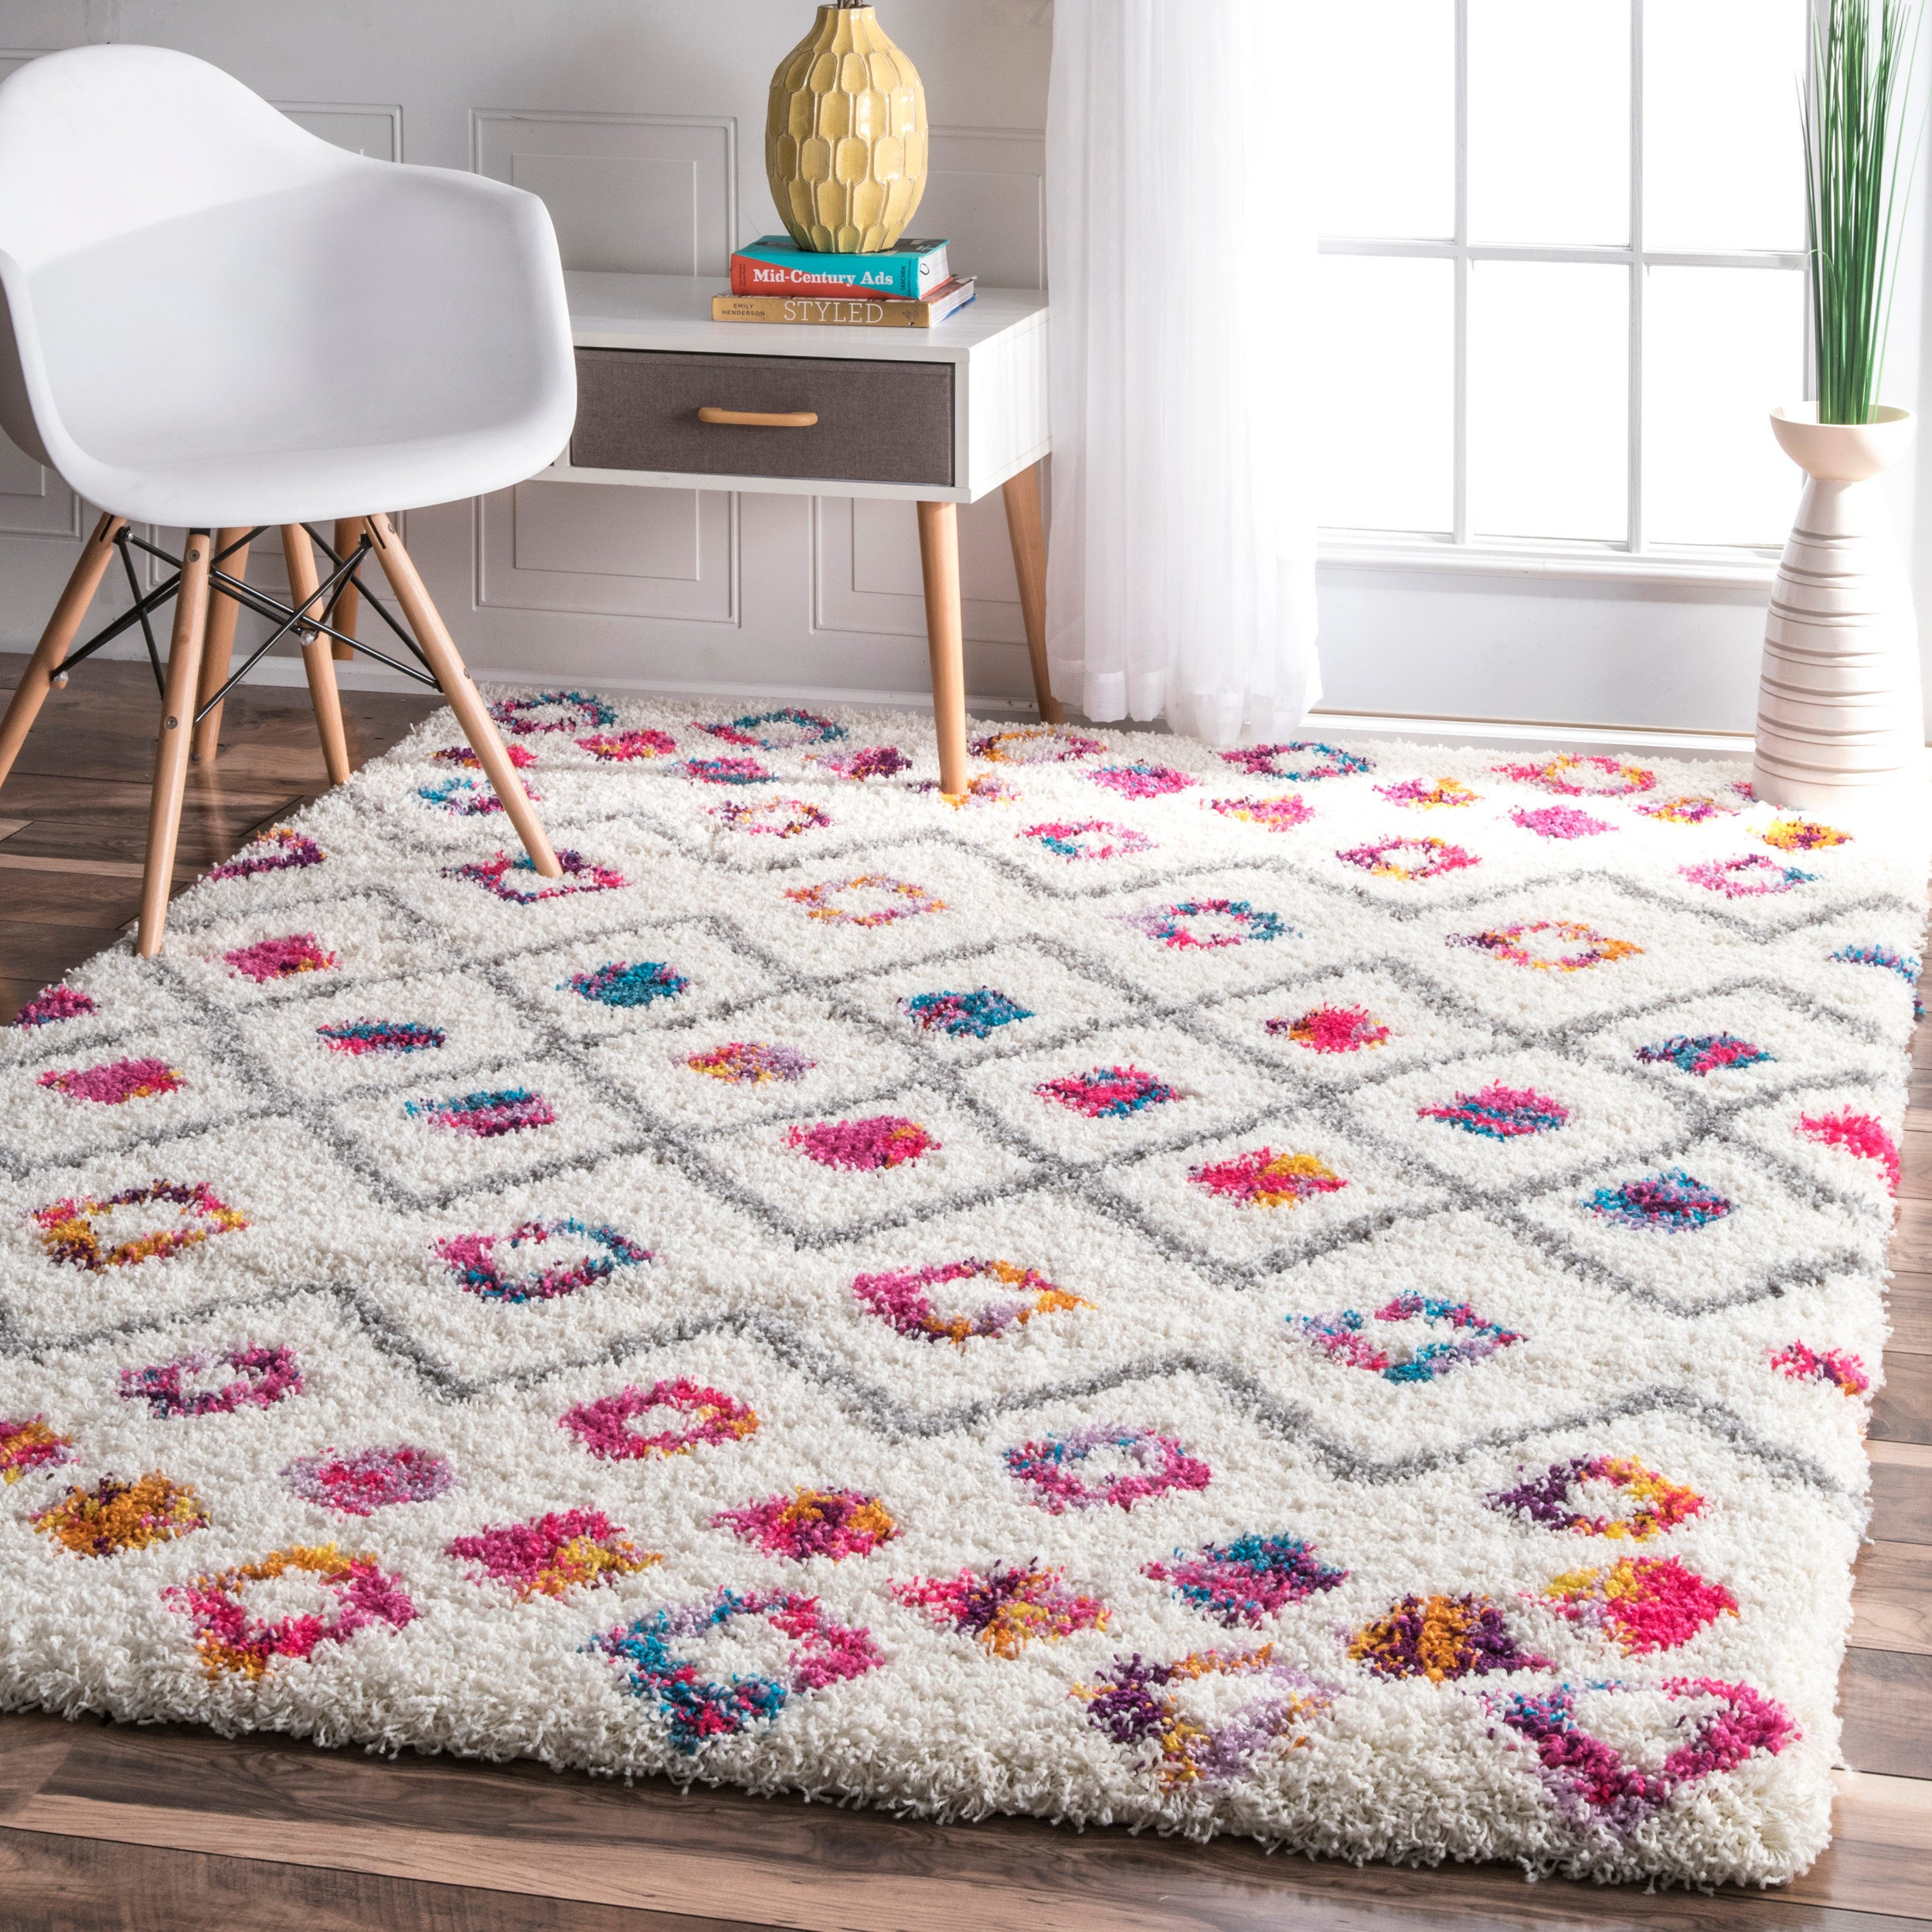 product upsell staged bohemian rug for